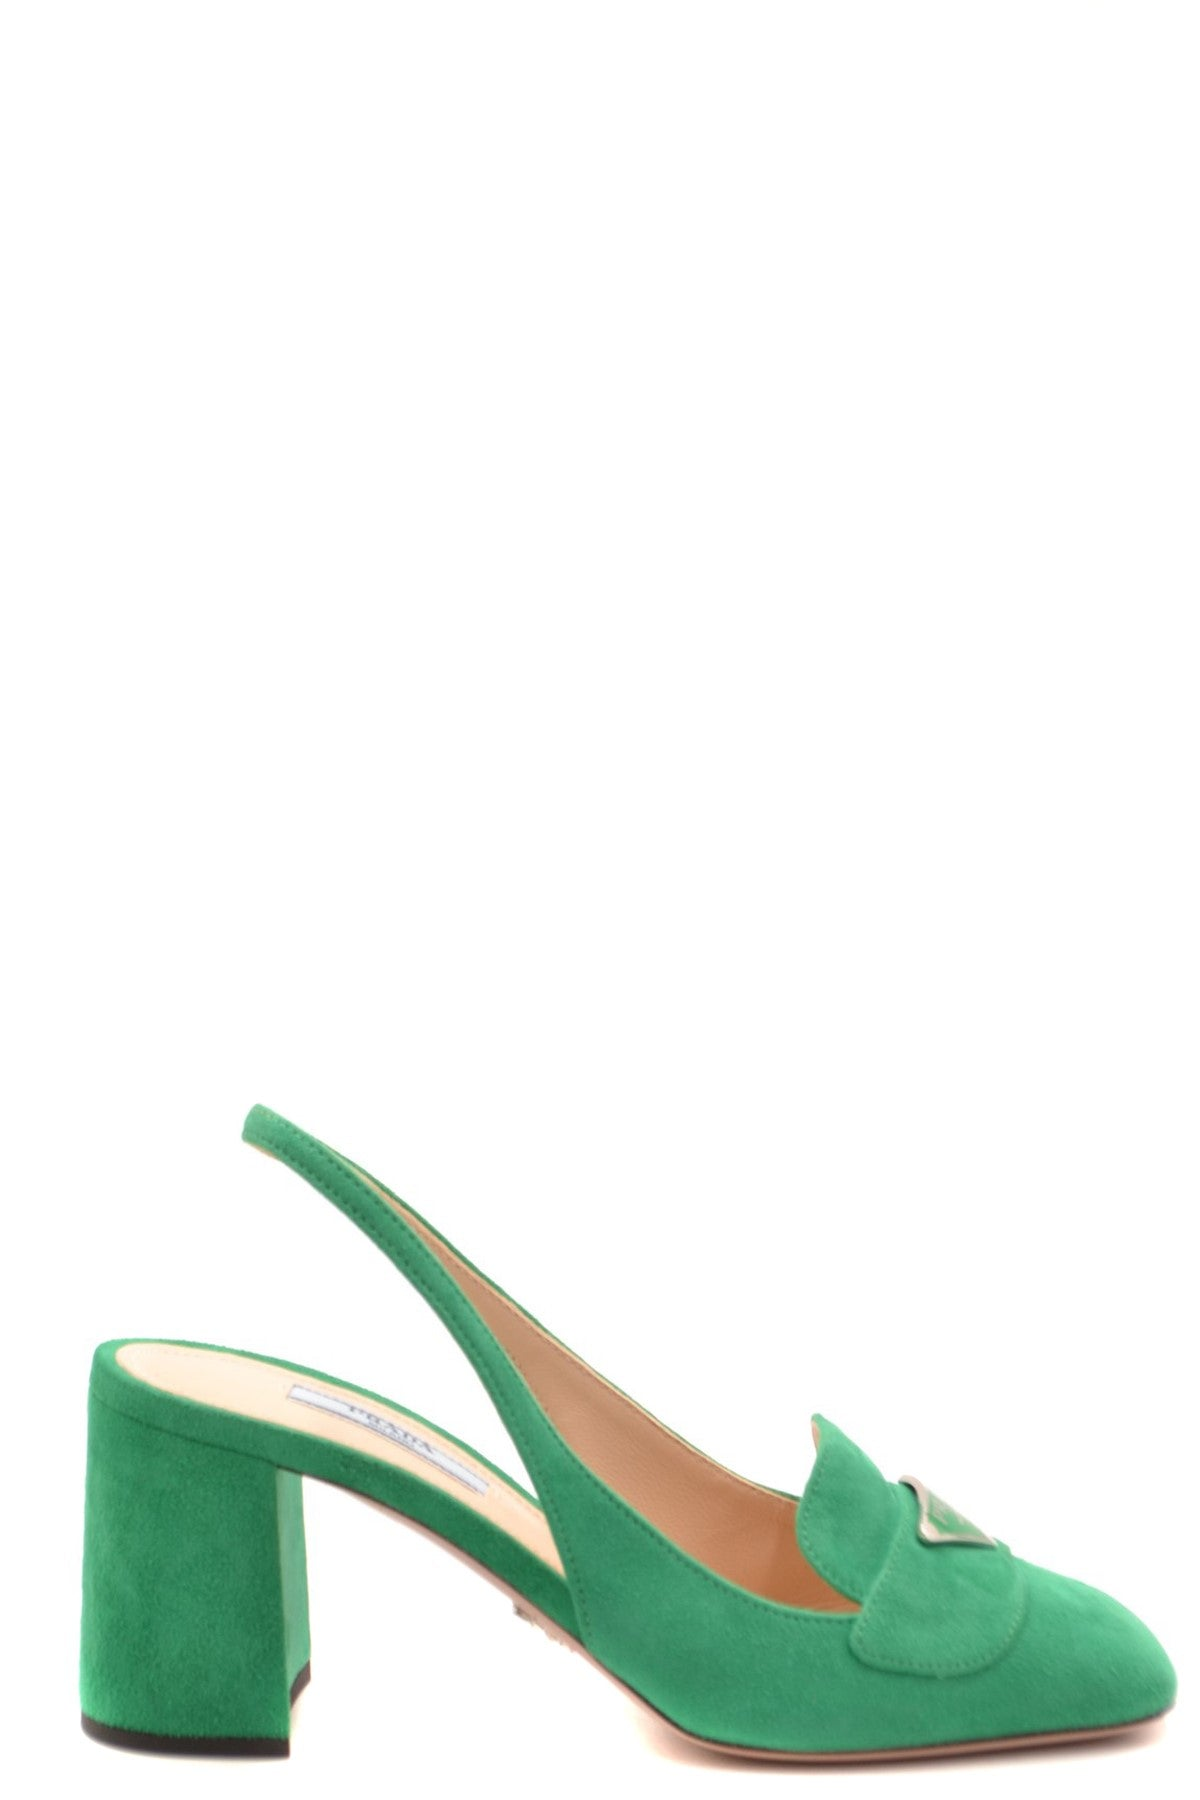 Shoes Prada-Women's Fashion - Women's Shoes - Women's Sandals-36-Product Details Terms: New With LabelMain Color: GreenType Of Accessory: ShoesSeason: Spring / SummerMade In: ItalyGender: WomanHeel'S Height: 8Size: EuComposition: Chamois 100%Year: 2020Manufacturer Part Number: 1D016M 008 F077U 11-Keyomi-Sook